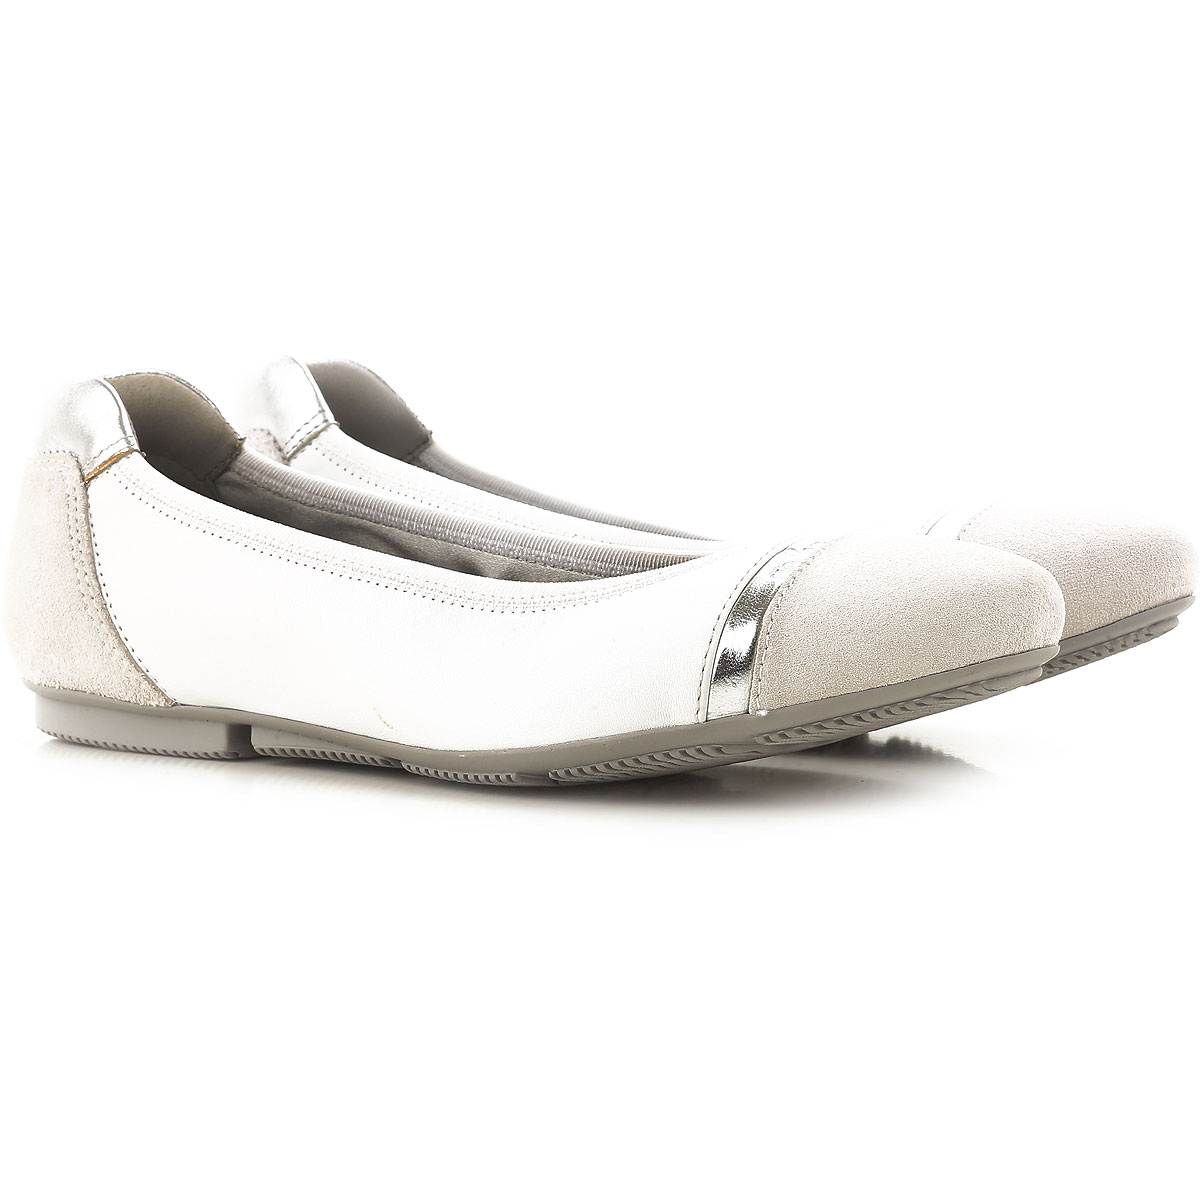 Hogan Ballet Flats Ballerina Shoes for Women On Sale in Outlet, White, Leather, 2019, 5 5.5